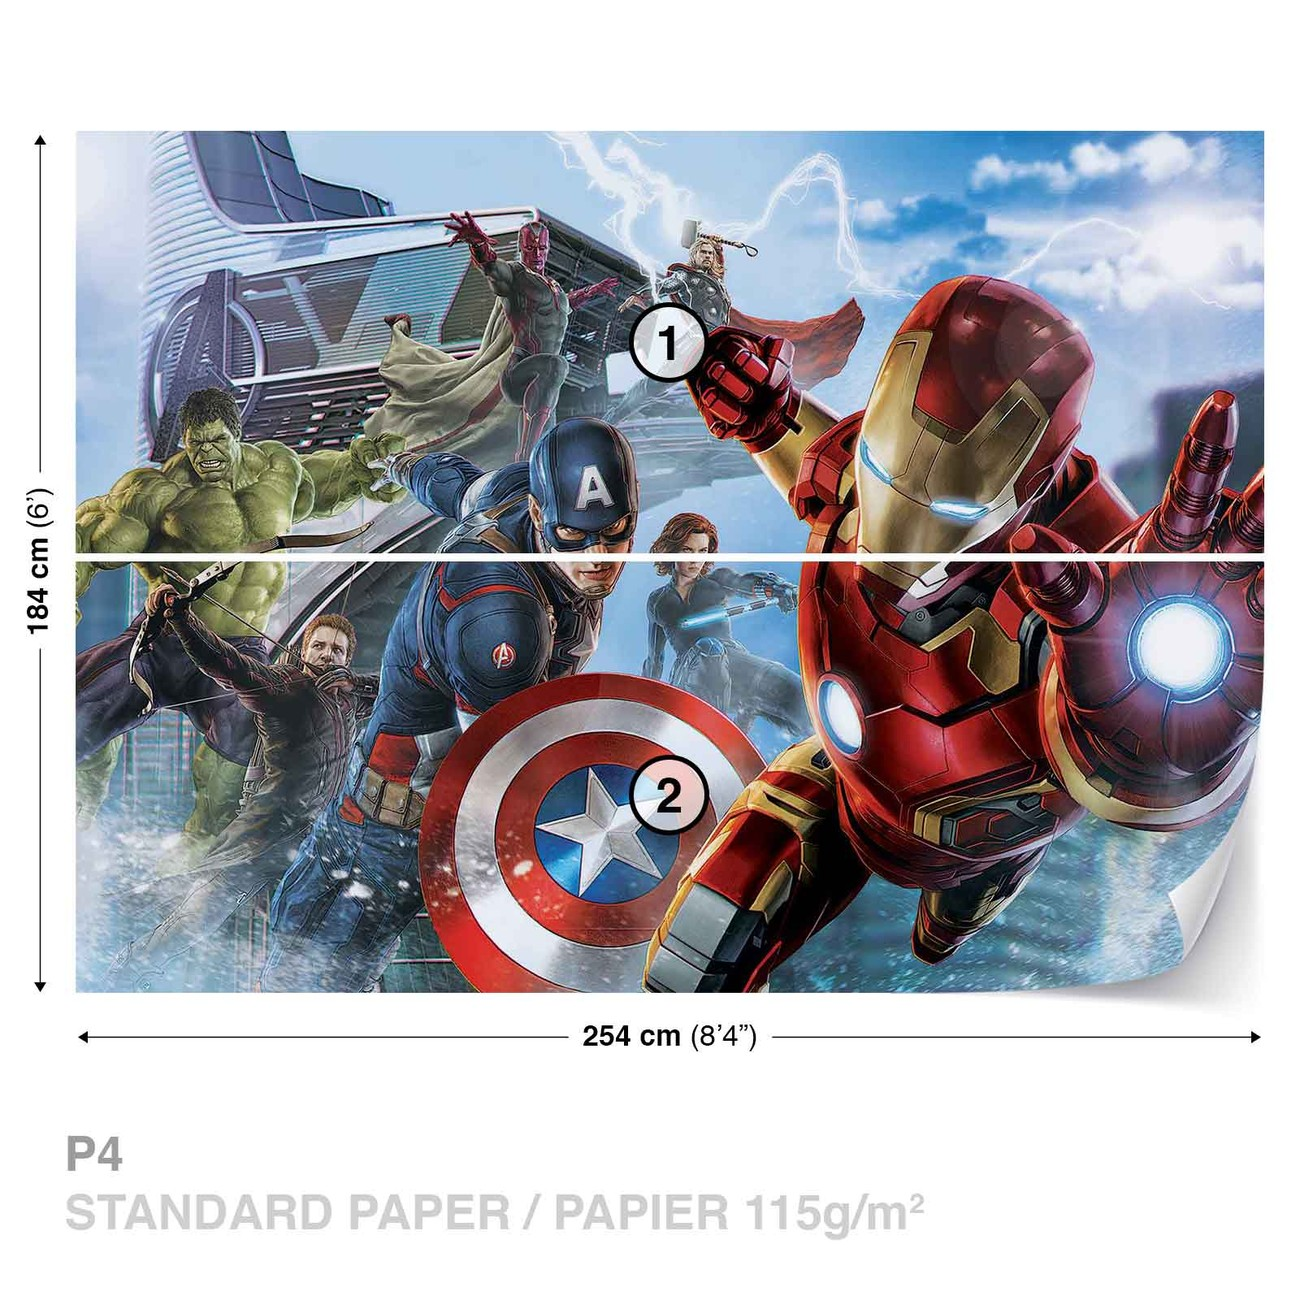 Marvel avengers team wall paper mural buy at for Avengers mural poster